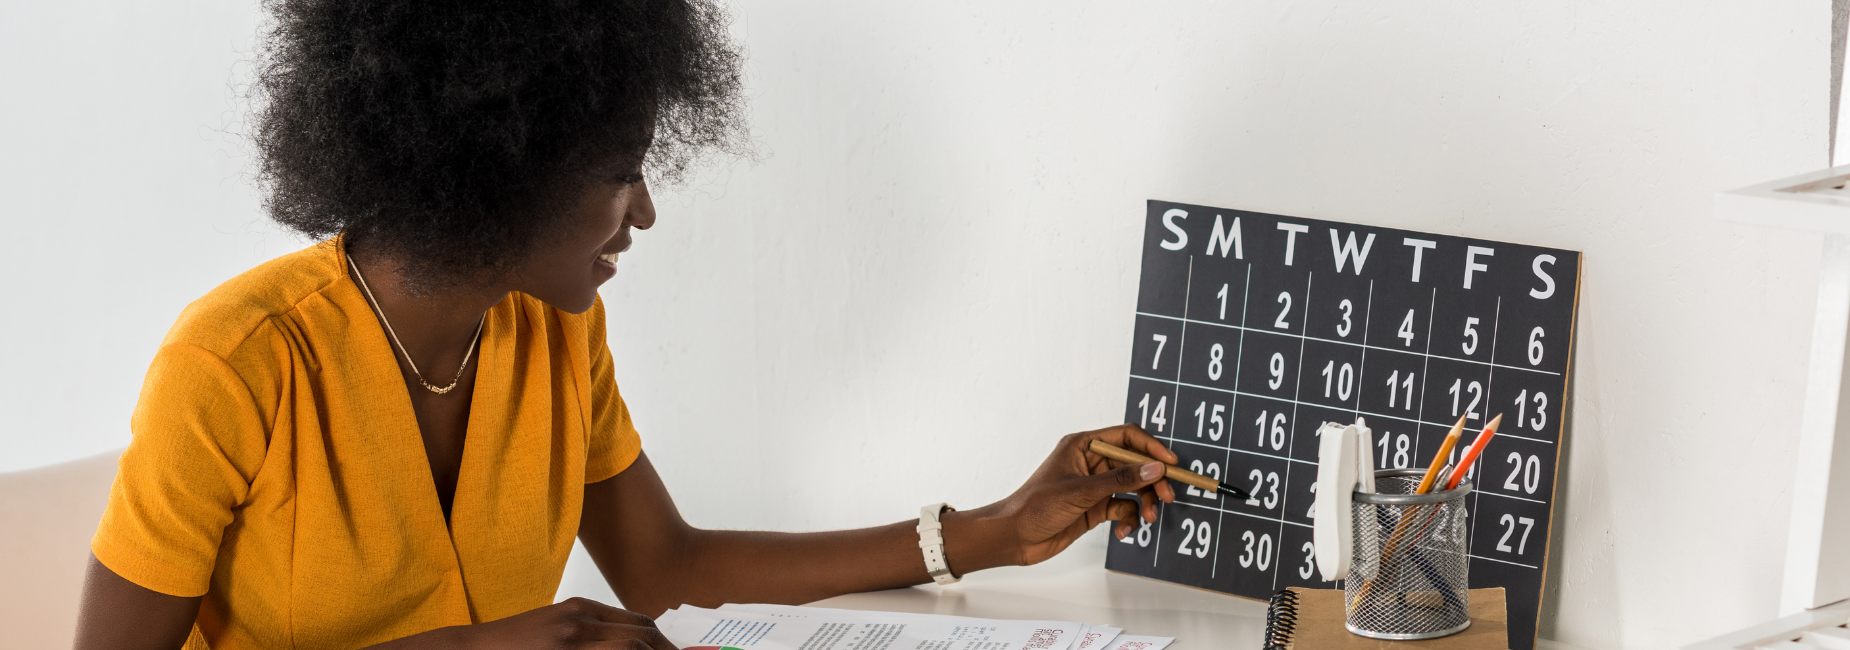 woman at a desk pointing to a date on the calendar